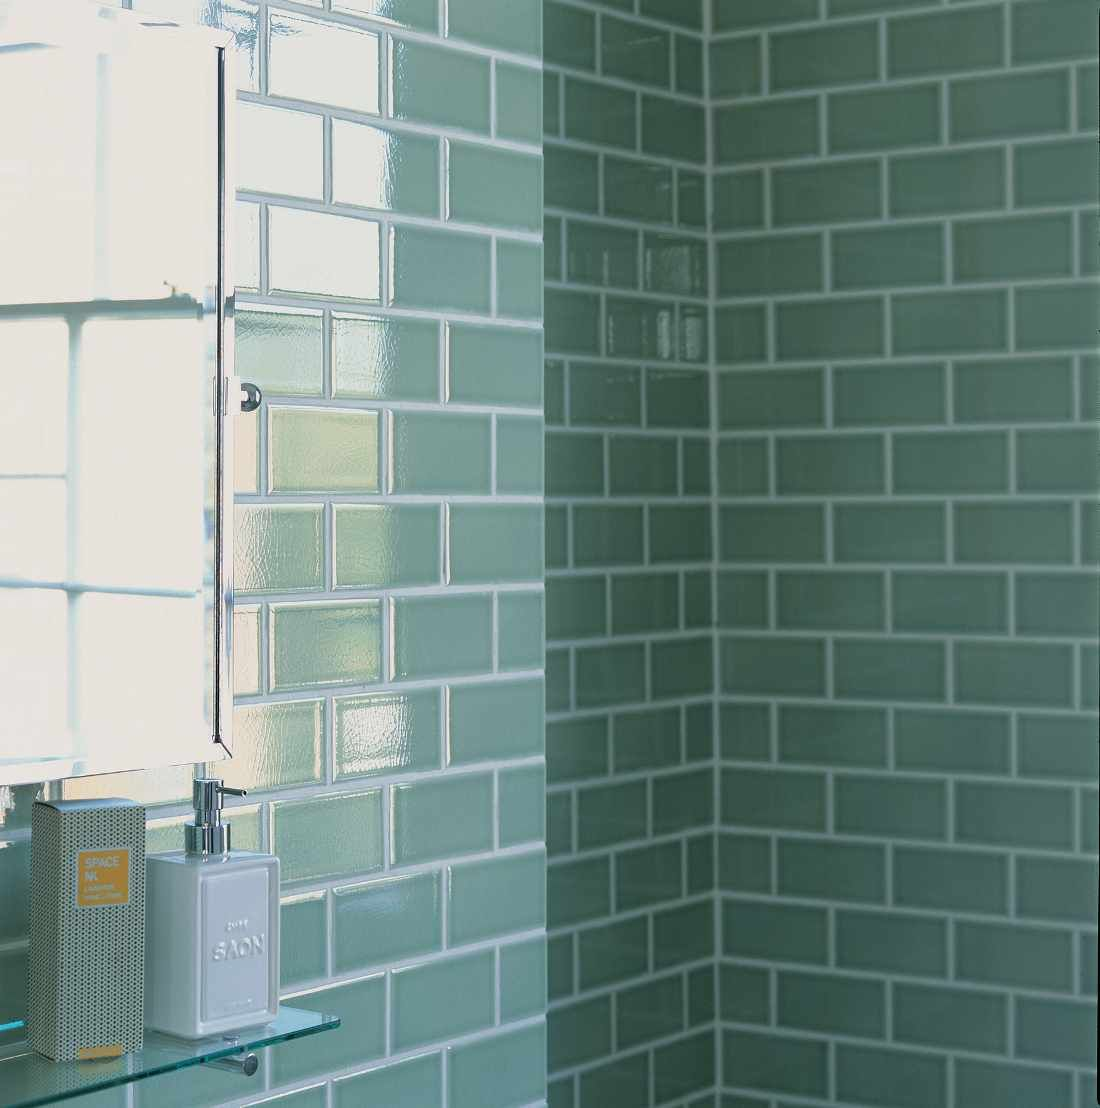 Bathroom wall tile ideas Bathroom tiles ideas nz